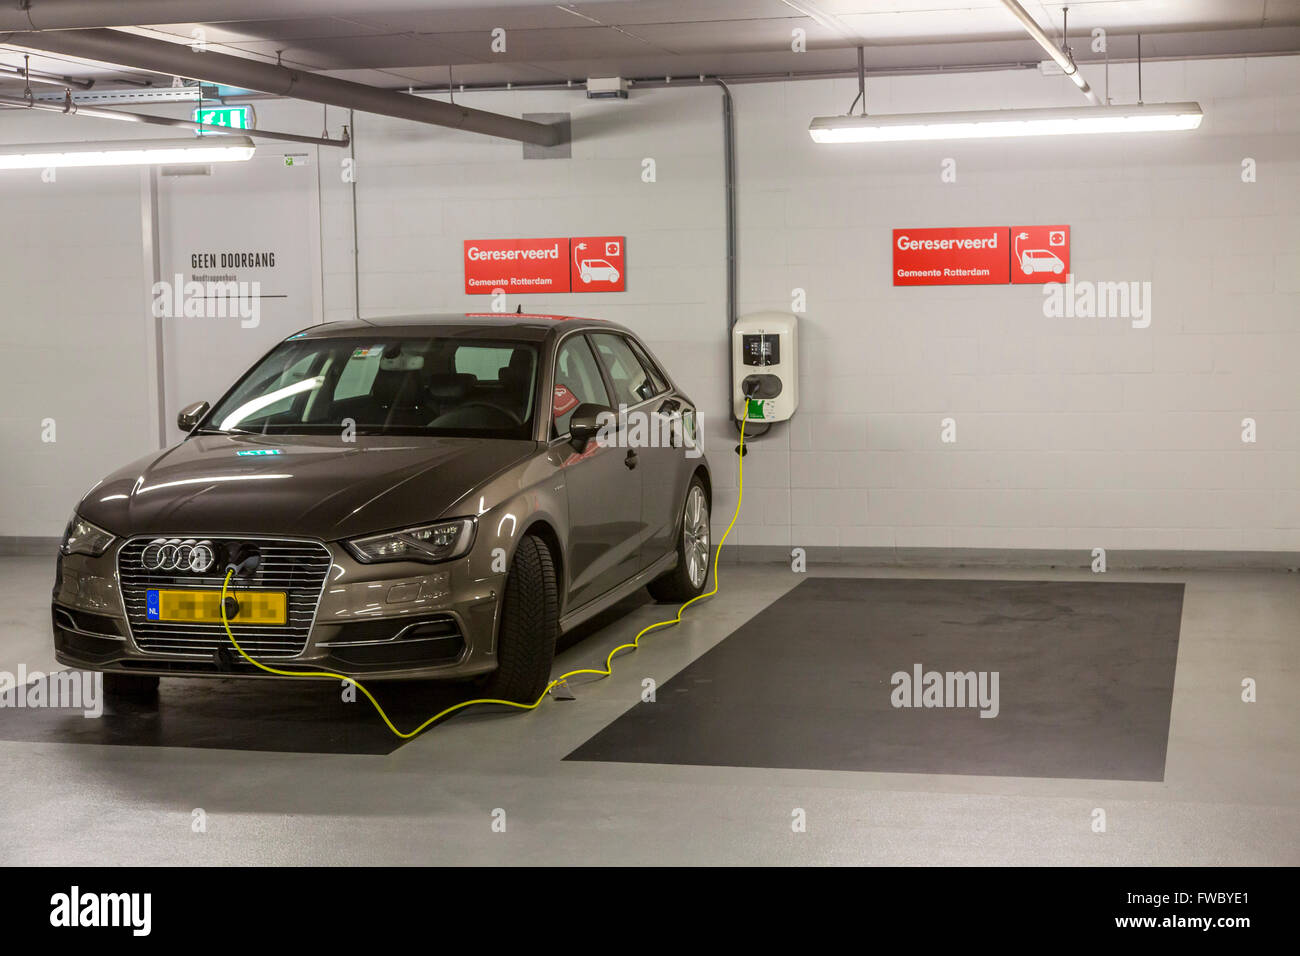 Auto Garage Rotterdam : Charging station for electric cars in a public parking garage